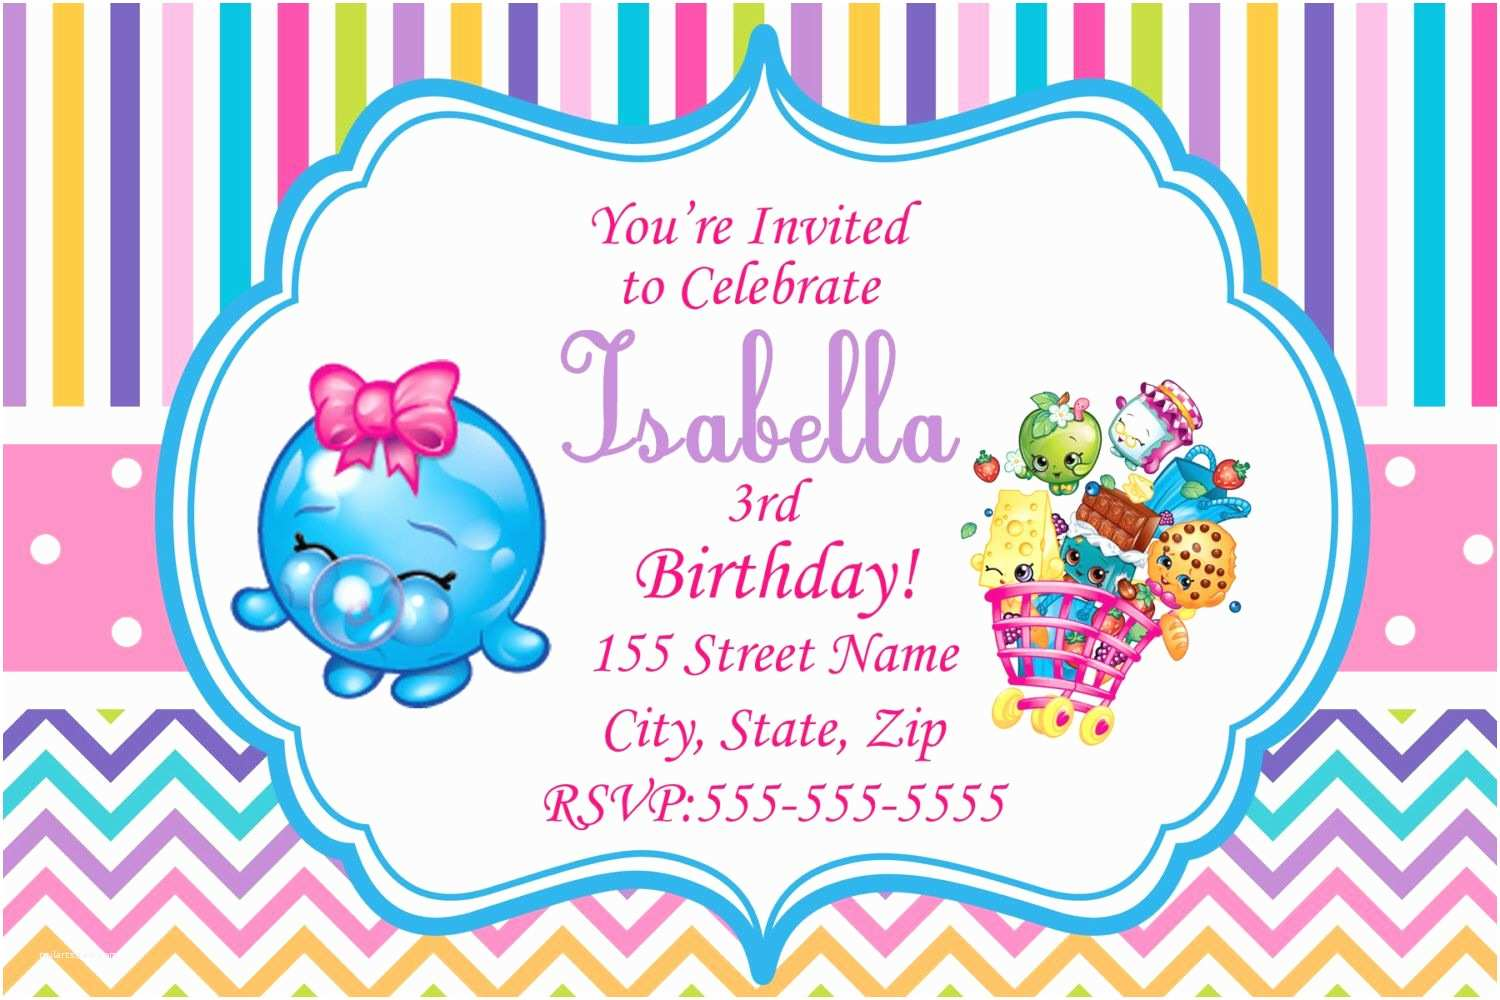 Shopkins Birthday Party Invitations Shopkins Invitations Shopkins Printed Invitations